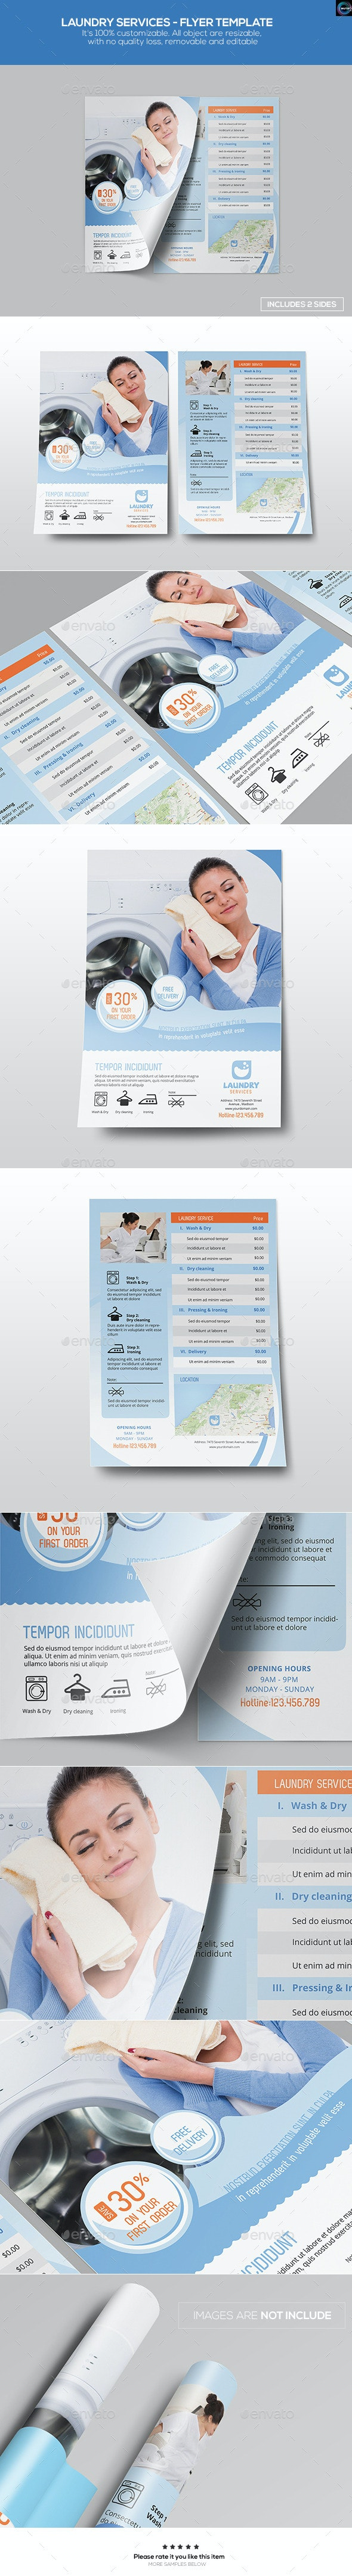 Laundry Services - Flyer Template - Commerce Flyers